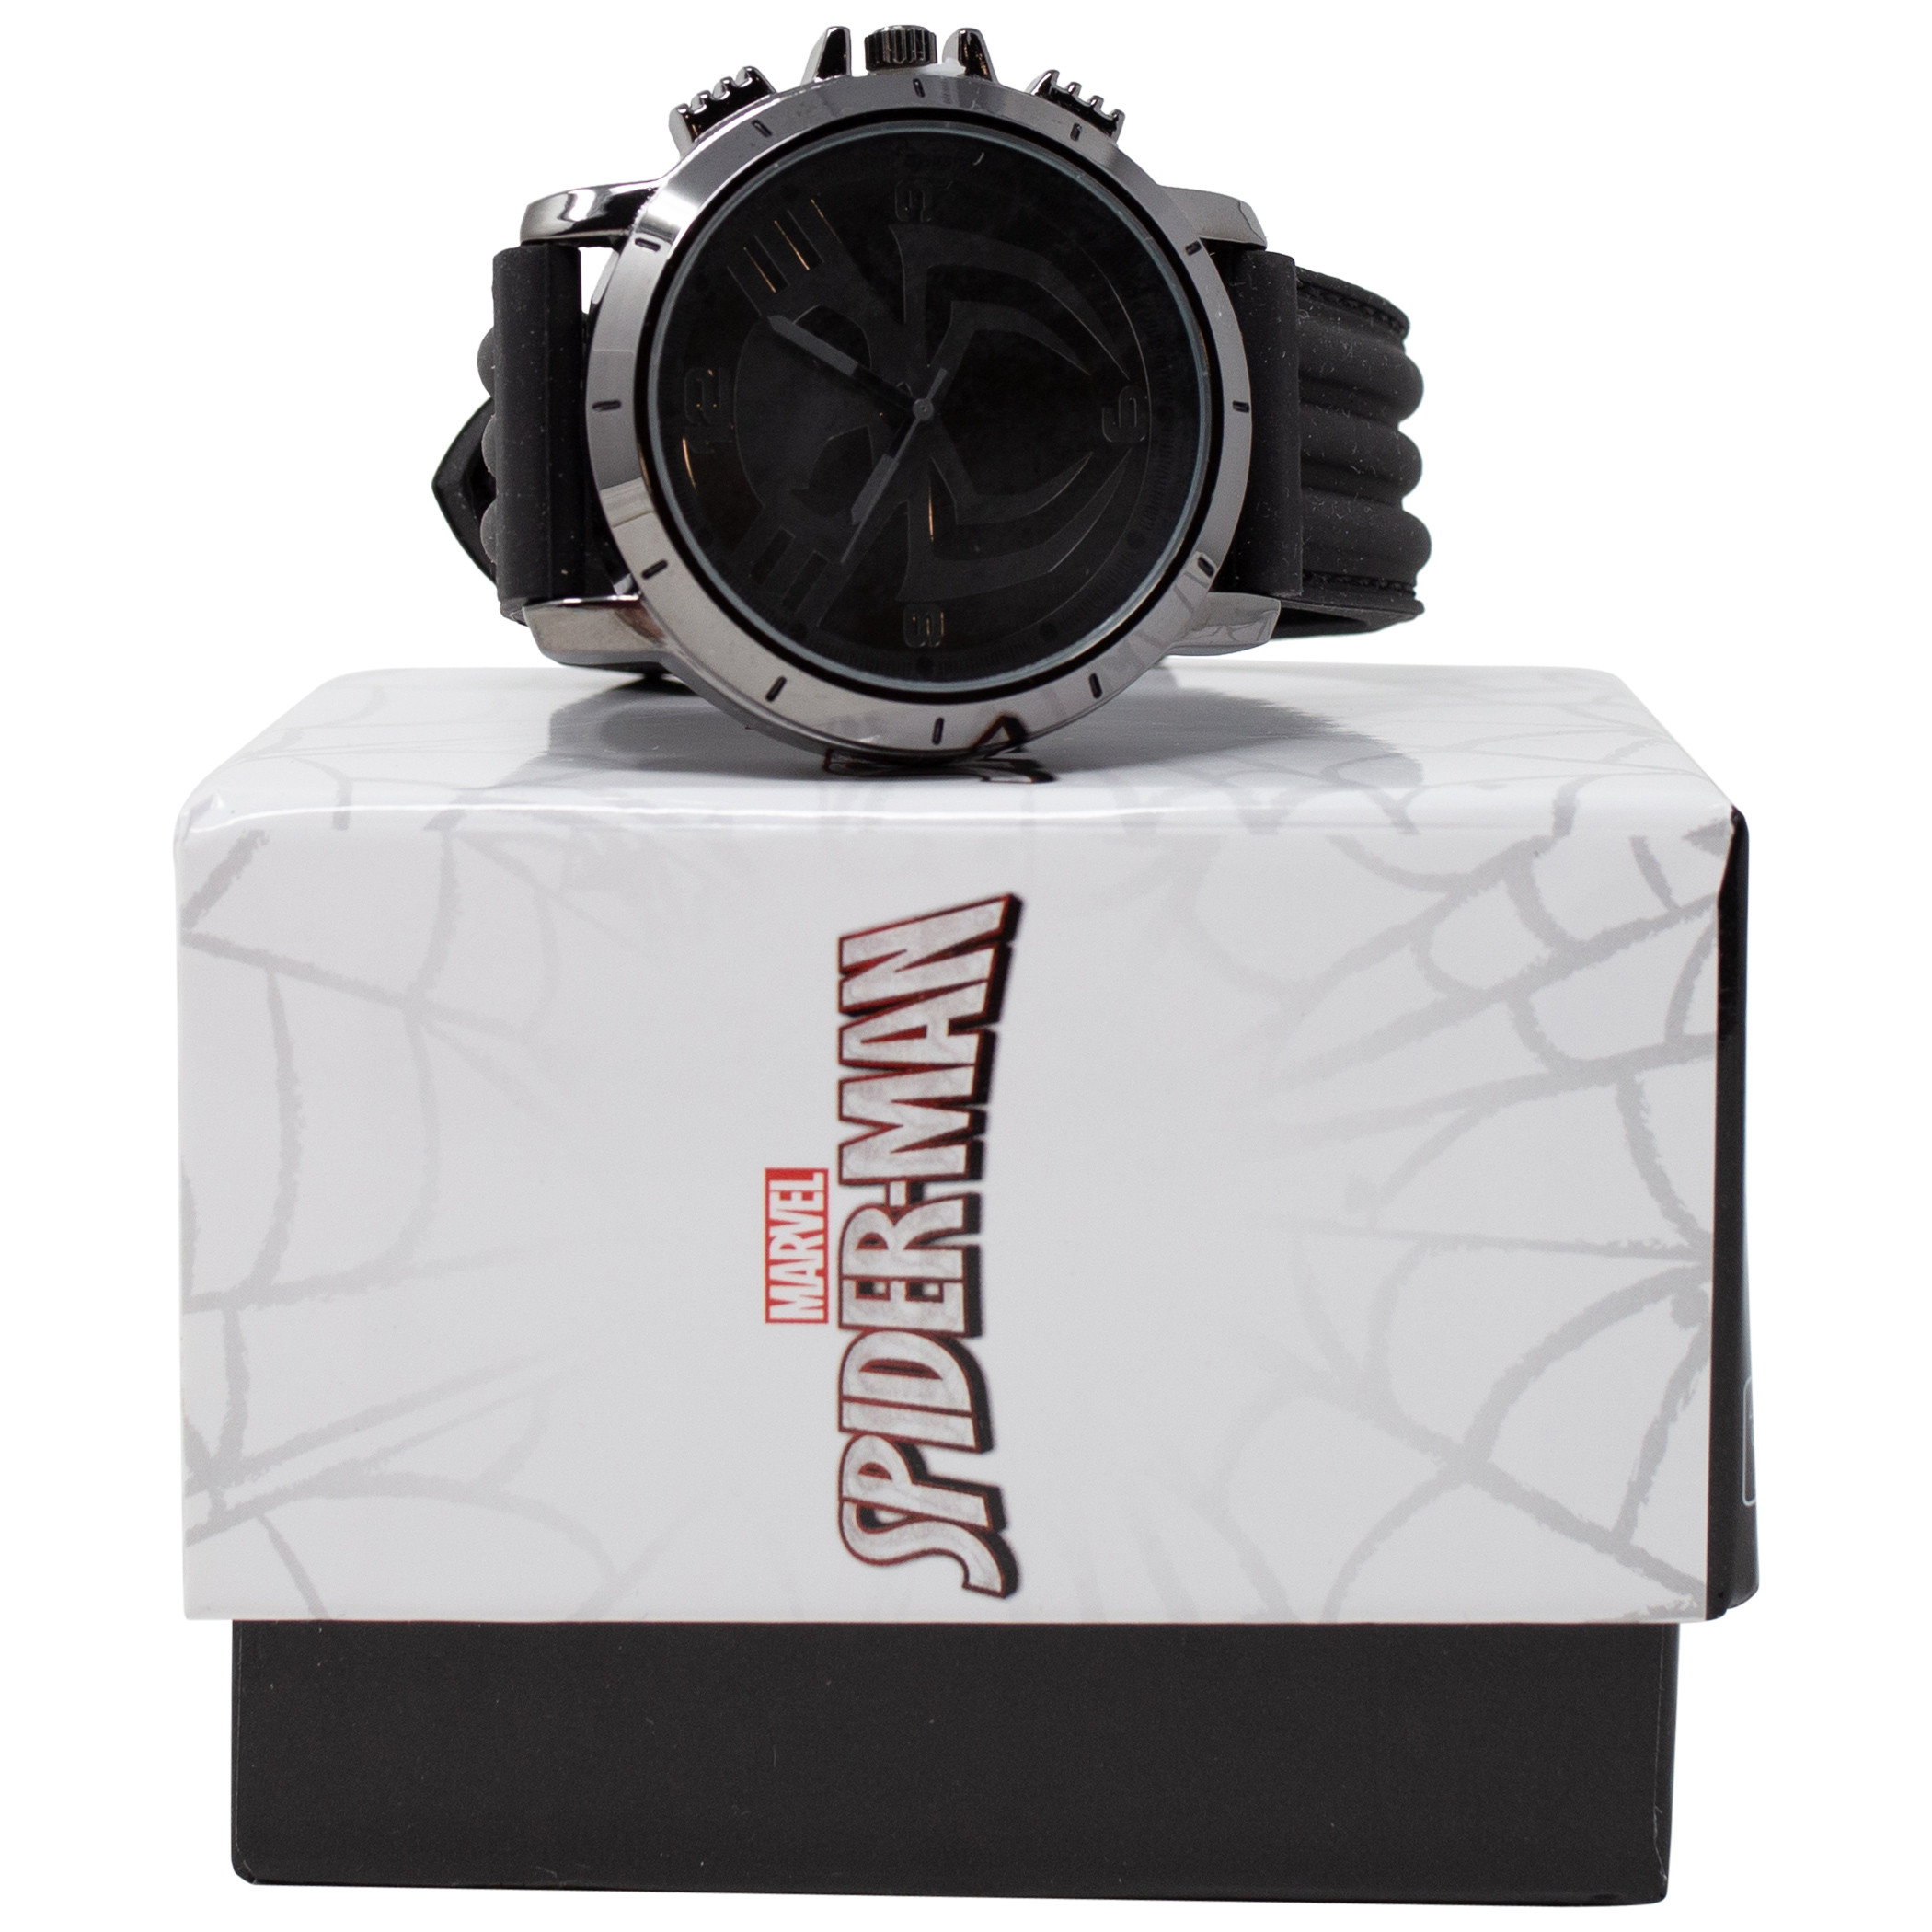 Spider-Man 2099 Symbol Black Watch